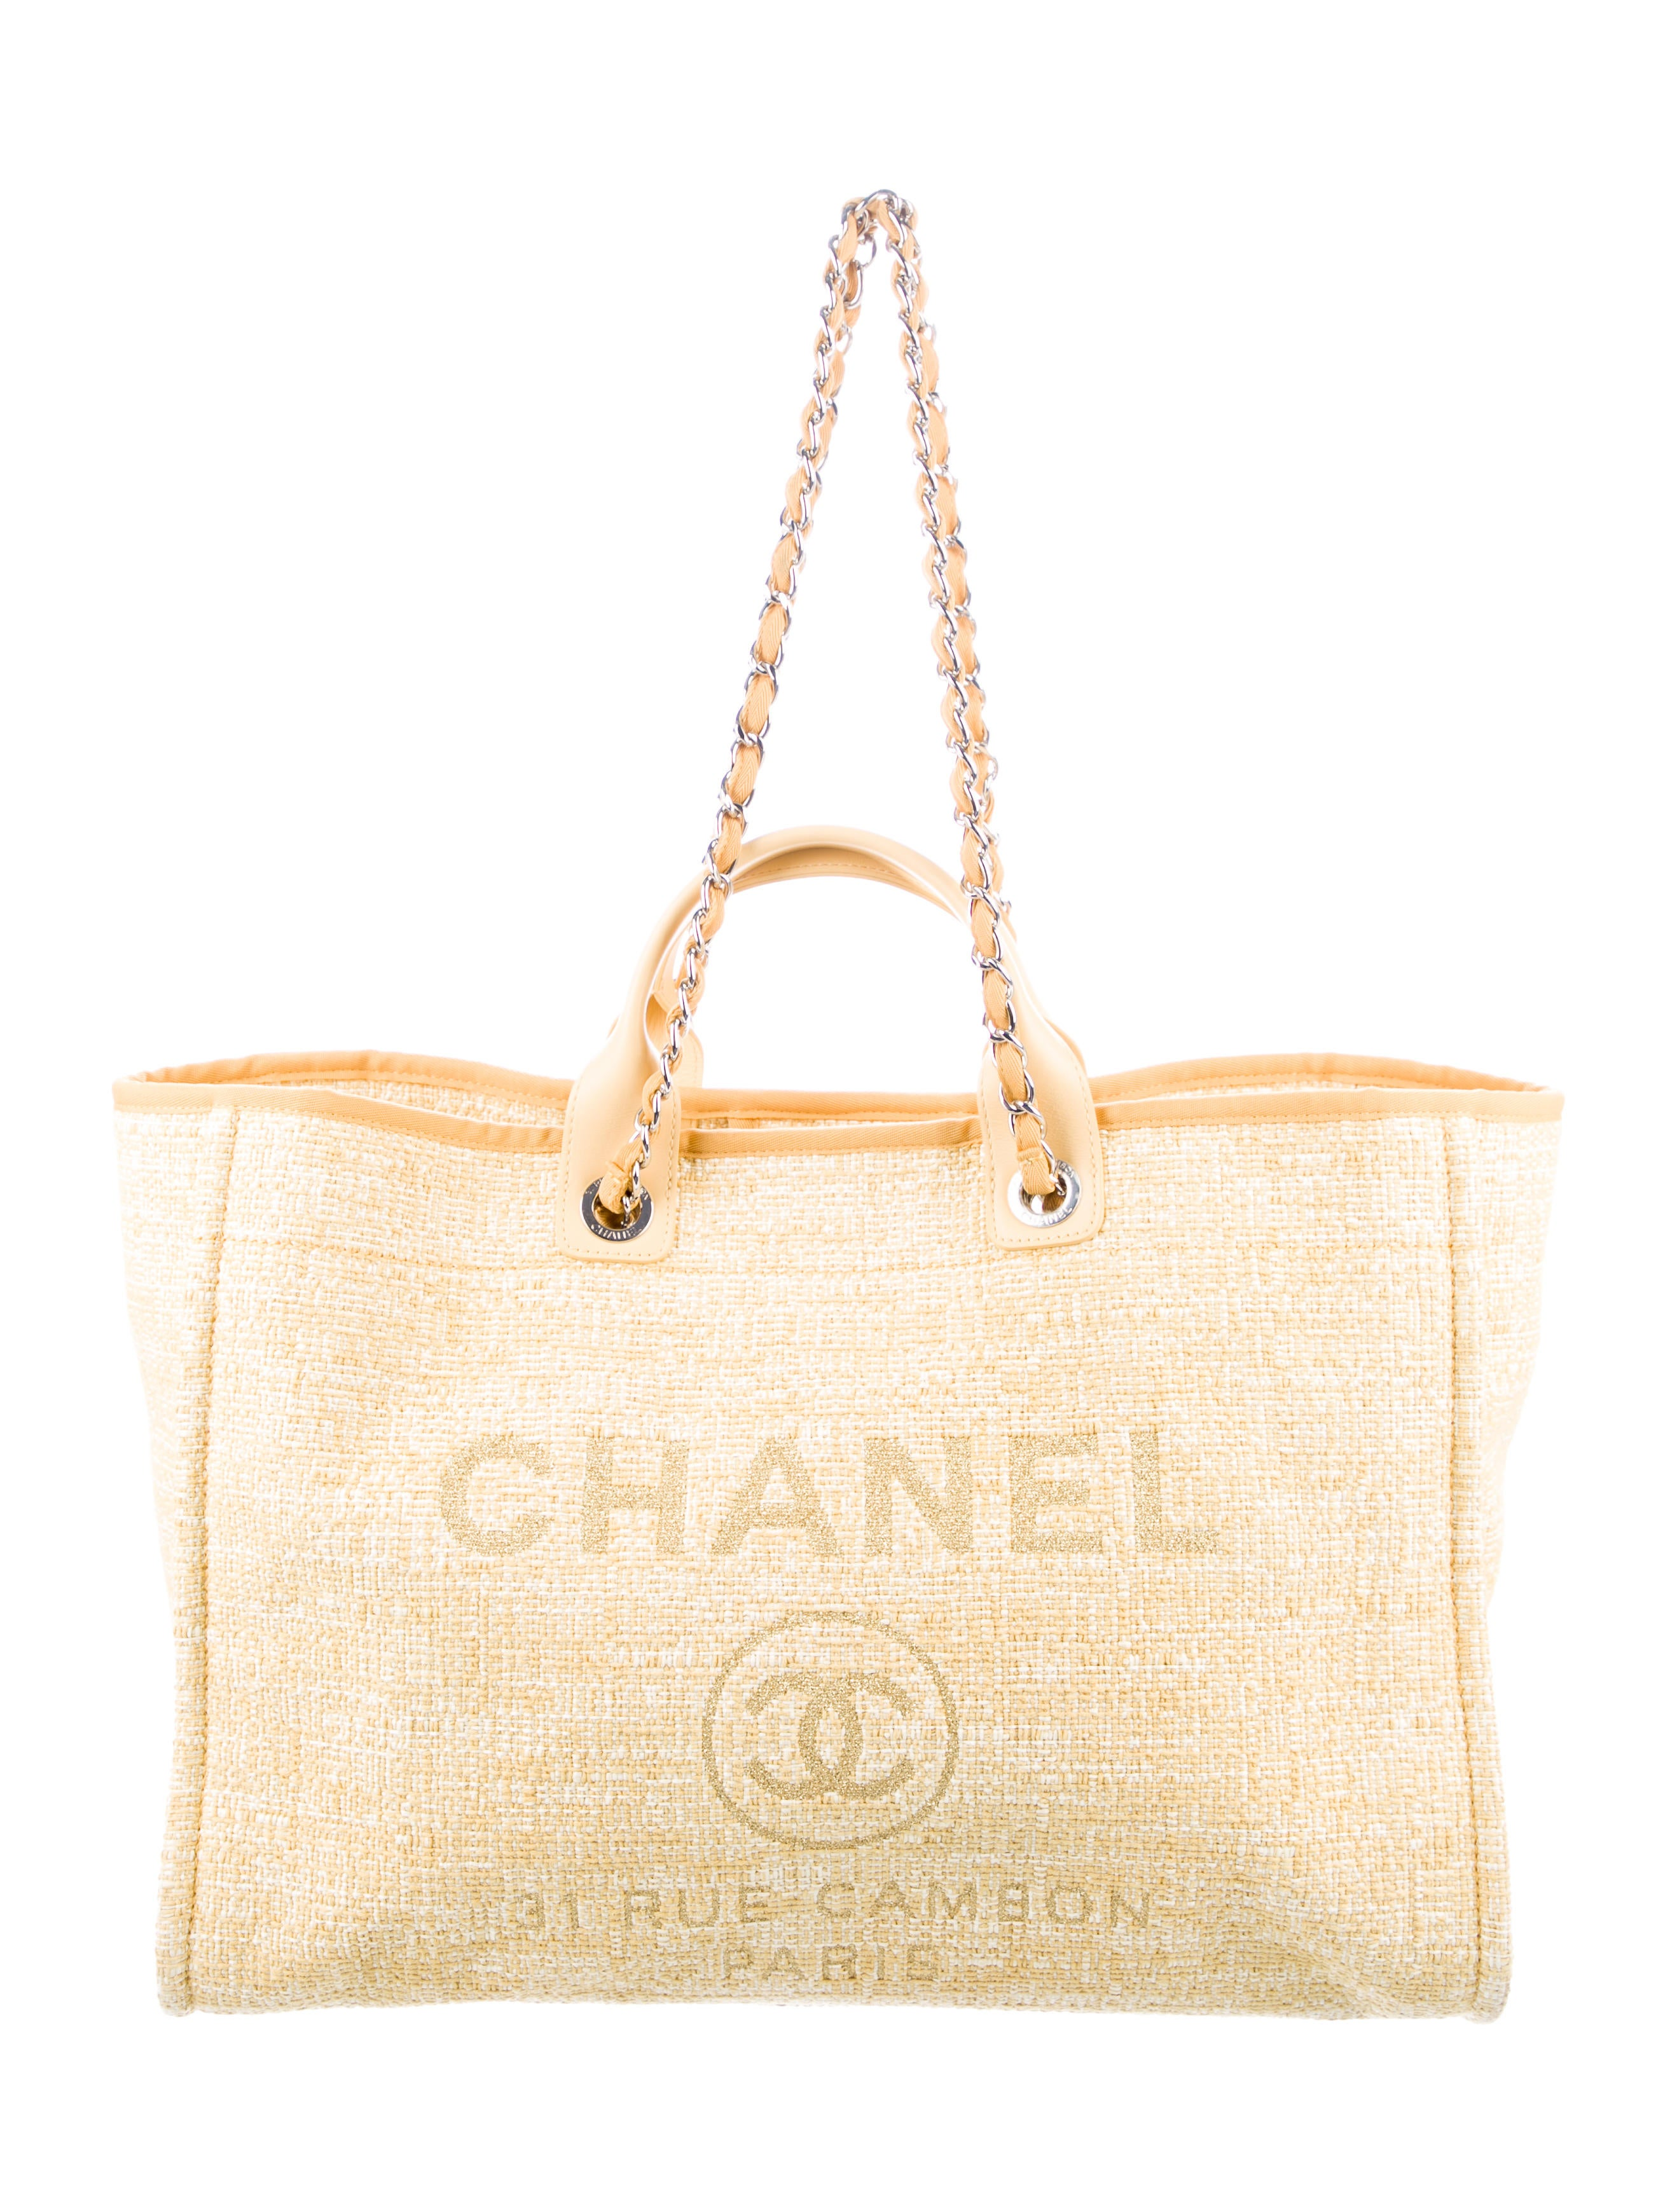 00e437543c5d83 Chanel 2018 Large Deauville Shopping Tote - Handbags - CHA286238 ...